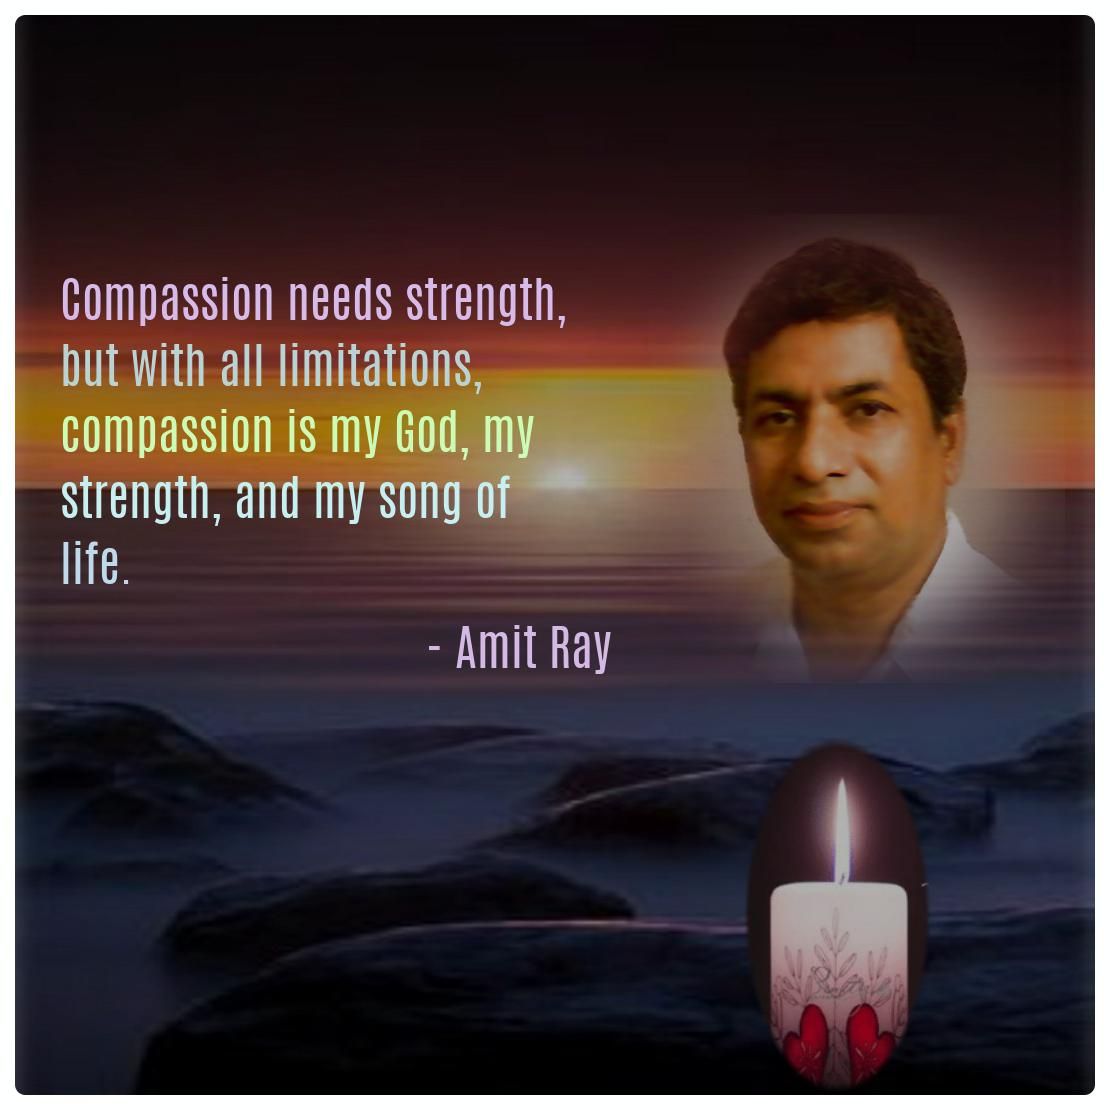 Compassion needs strength, but with all limitations, compassion is my God, my strength, and my song of life. -- Amit Ray